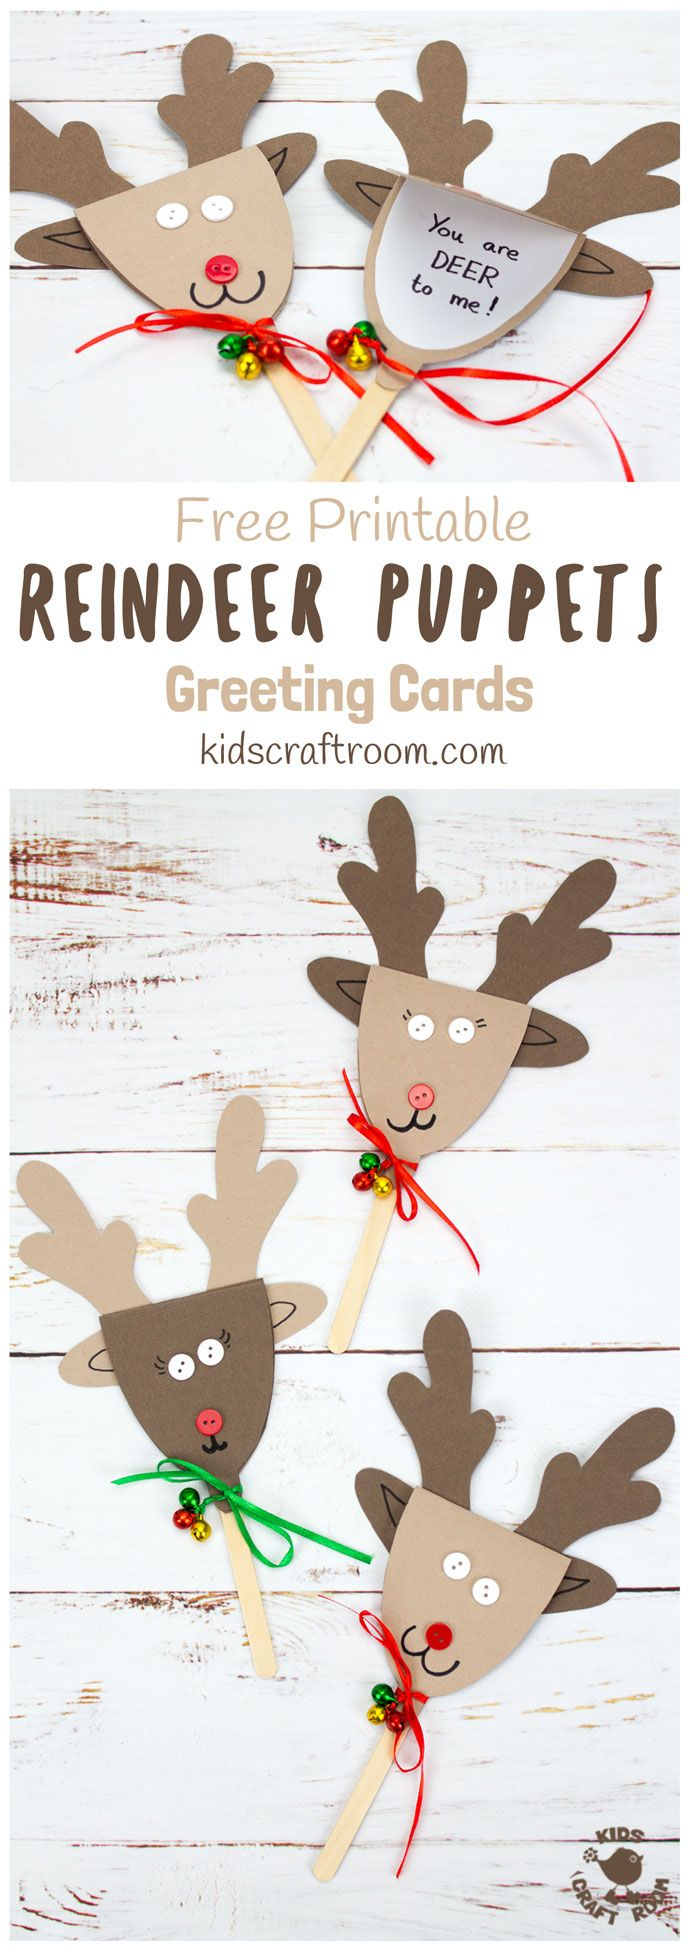 REINDEER PUPPET GREETING CARDS - These Rudolf Puppets are so fun to make and because they double up to be surprise greeting cards they are perfect for sharing some festive cheer to friends and family too. They are Christmas on a stick literally! #Christmas #Christmascrafts #Christmascraftideas #kidscrafts #reindeer #Rudolf #reindeercrafts #rudolfcrafts #puppets #puppetcrafts #chistmaspuppets #greetingcards #Christmascards #kidscraftroom via @KidsCraftRoom